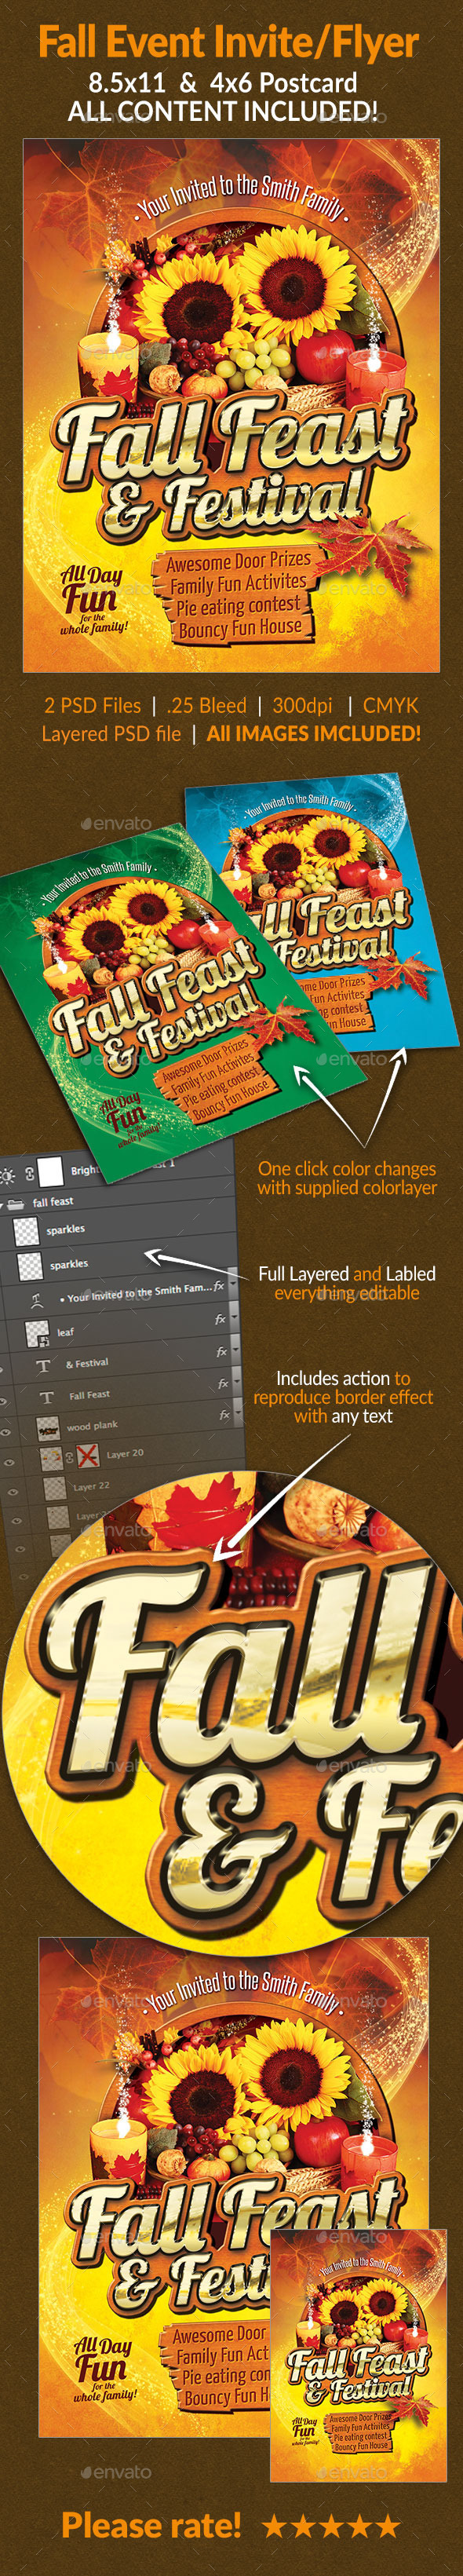 GraphicRiver Fall Feast Invite Flyer Set 8996820